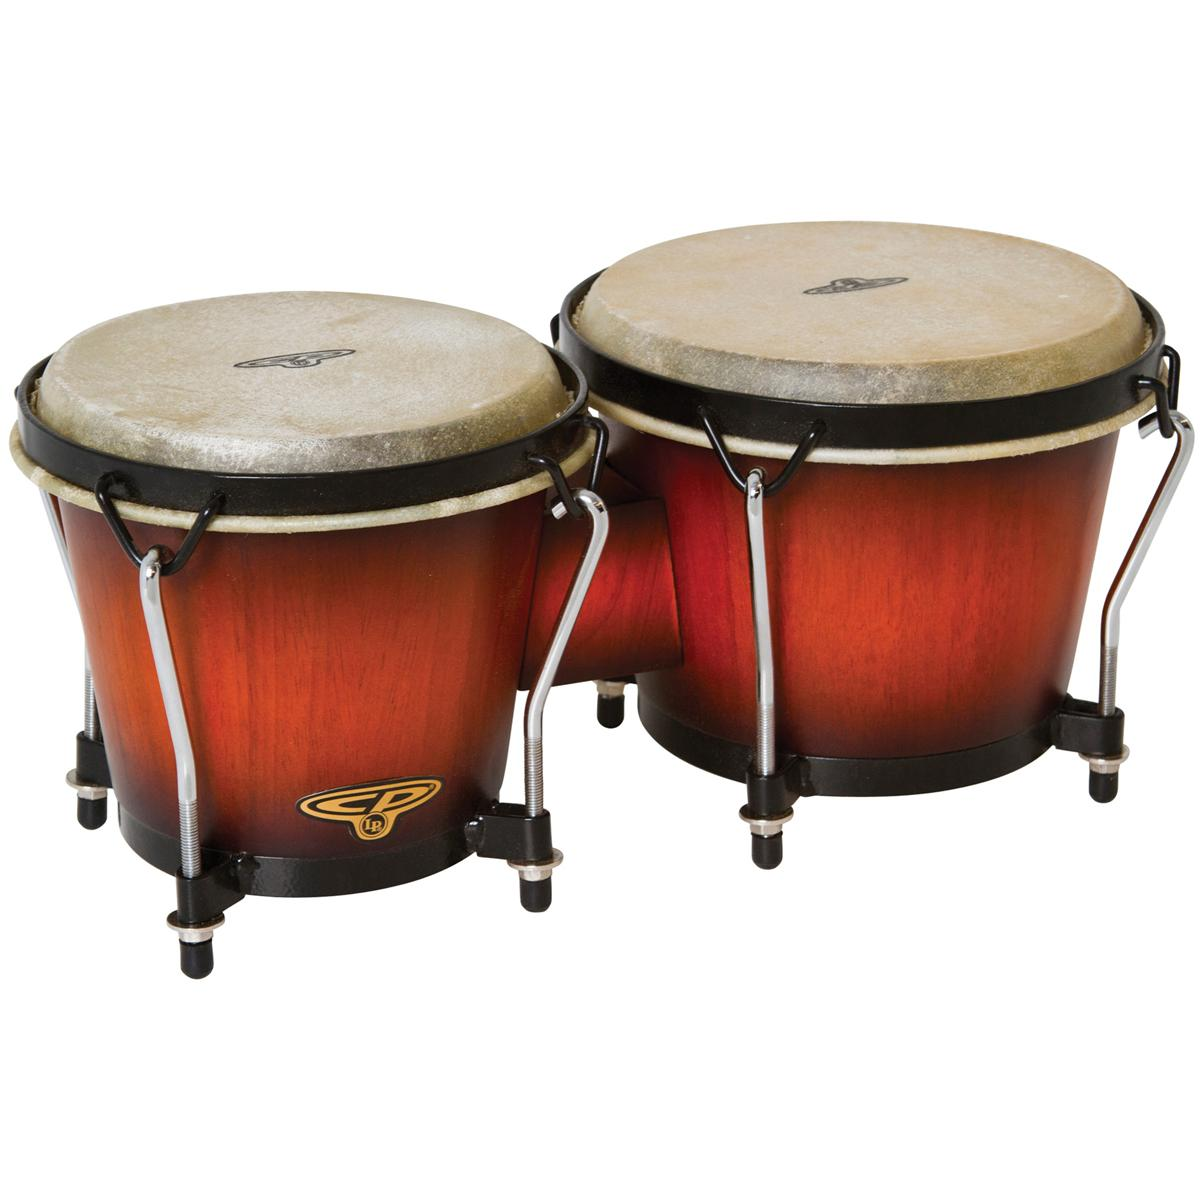 Latin Percussion CP221VSB CP Bongos in Vintage Sunburst Finish by LP